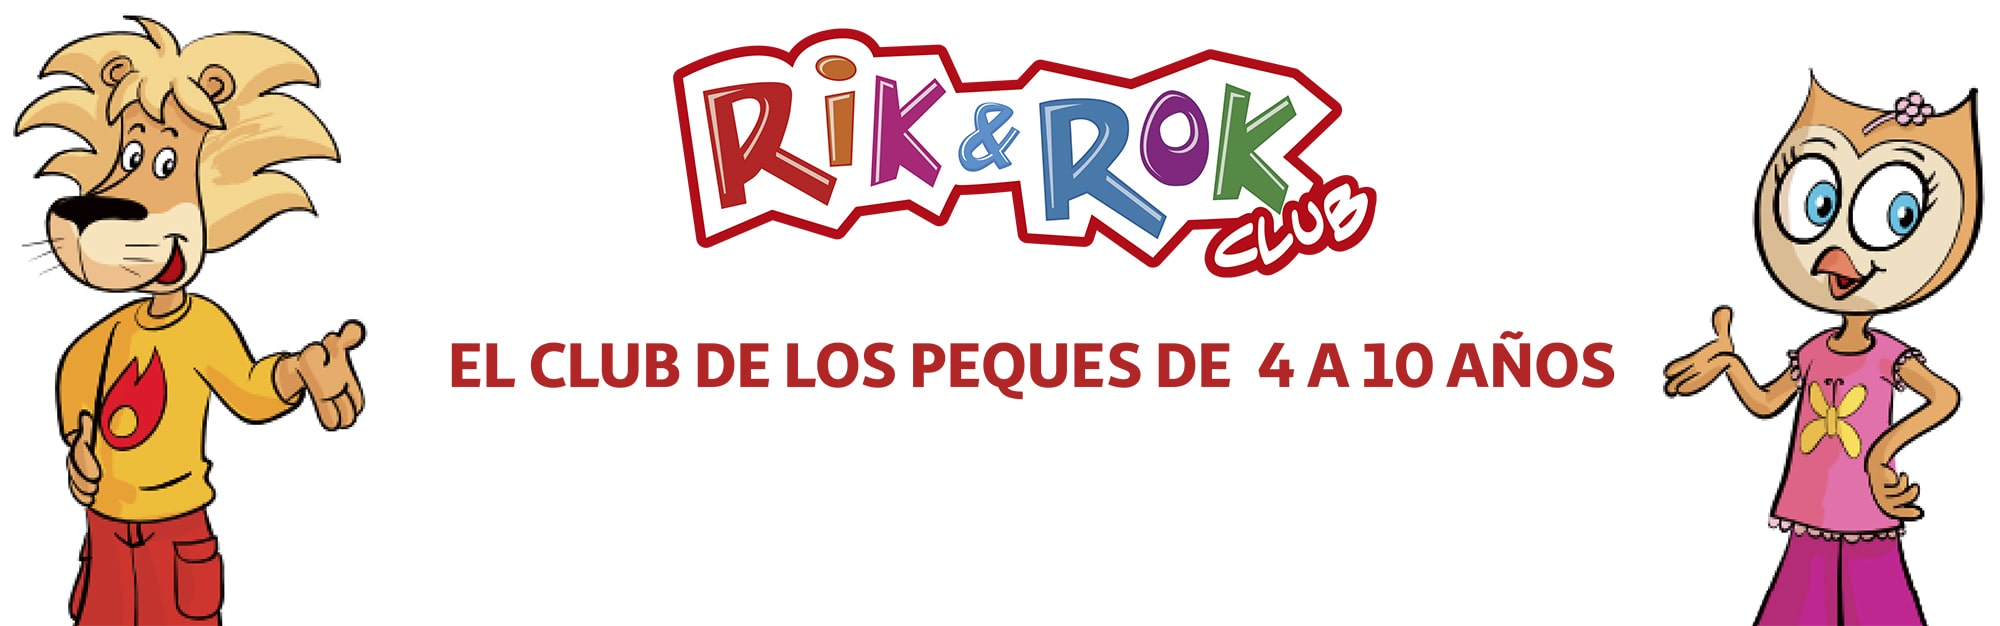 CLUB RIK&ROK